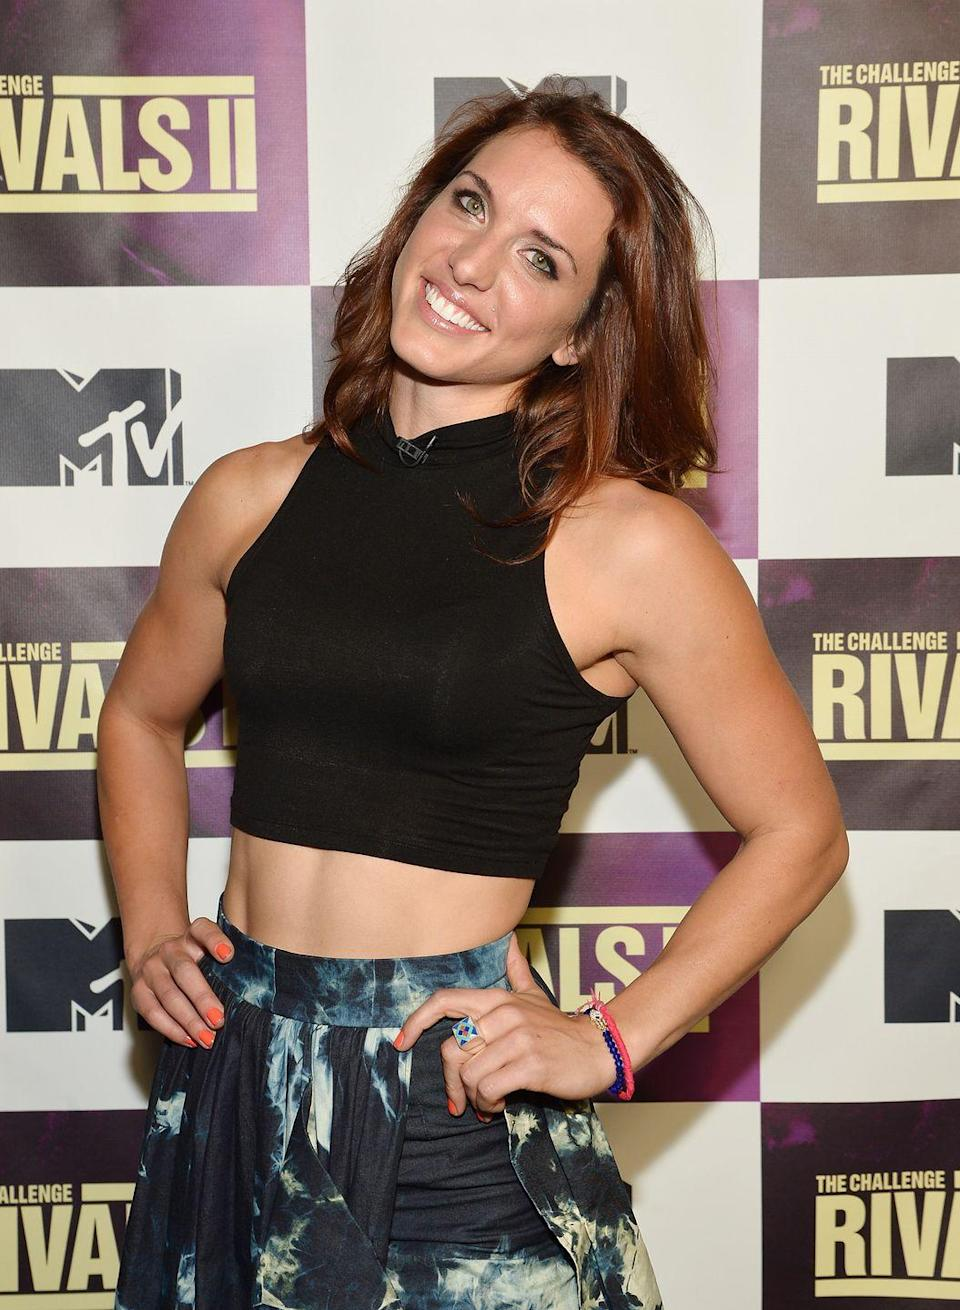 "<p>While tons of people attended casting calls and applied for the show, producers were on the lookout for a very specific kind of personality. Emily Schromm from <em>The Real World: D.C.</em> was <a href=""https://www.glamour.com/story/real-world-behind-the-scenes"" rel=""nofollow noopener"" target=""_blank"" data-ylk=""slk:discovered while working at Starbucks"" class=""link rapid-noclick-resp"">discovered while working at Starbucks</a>.</p>"